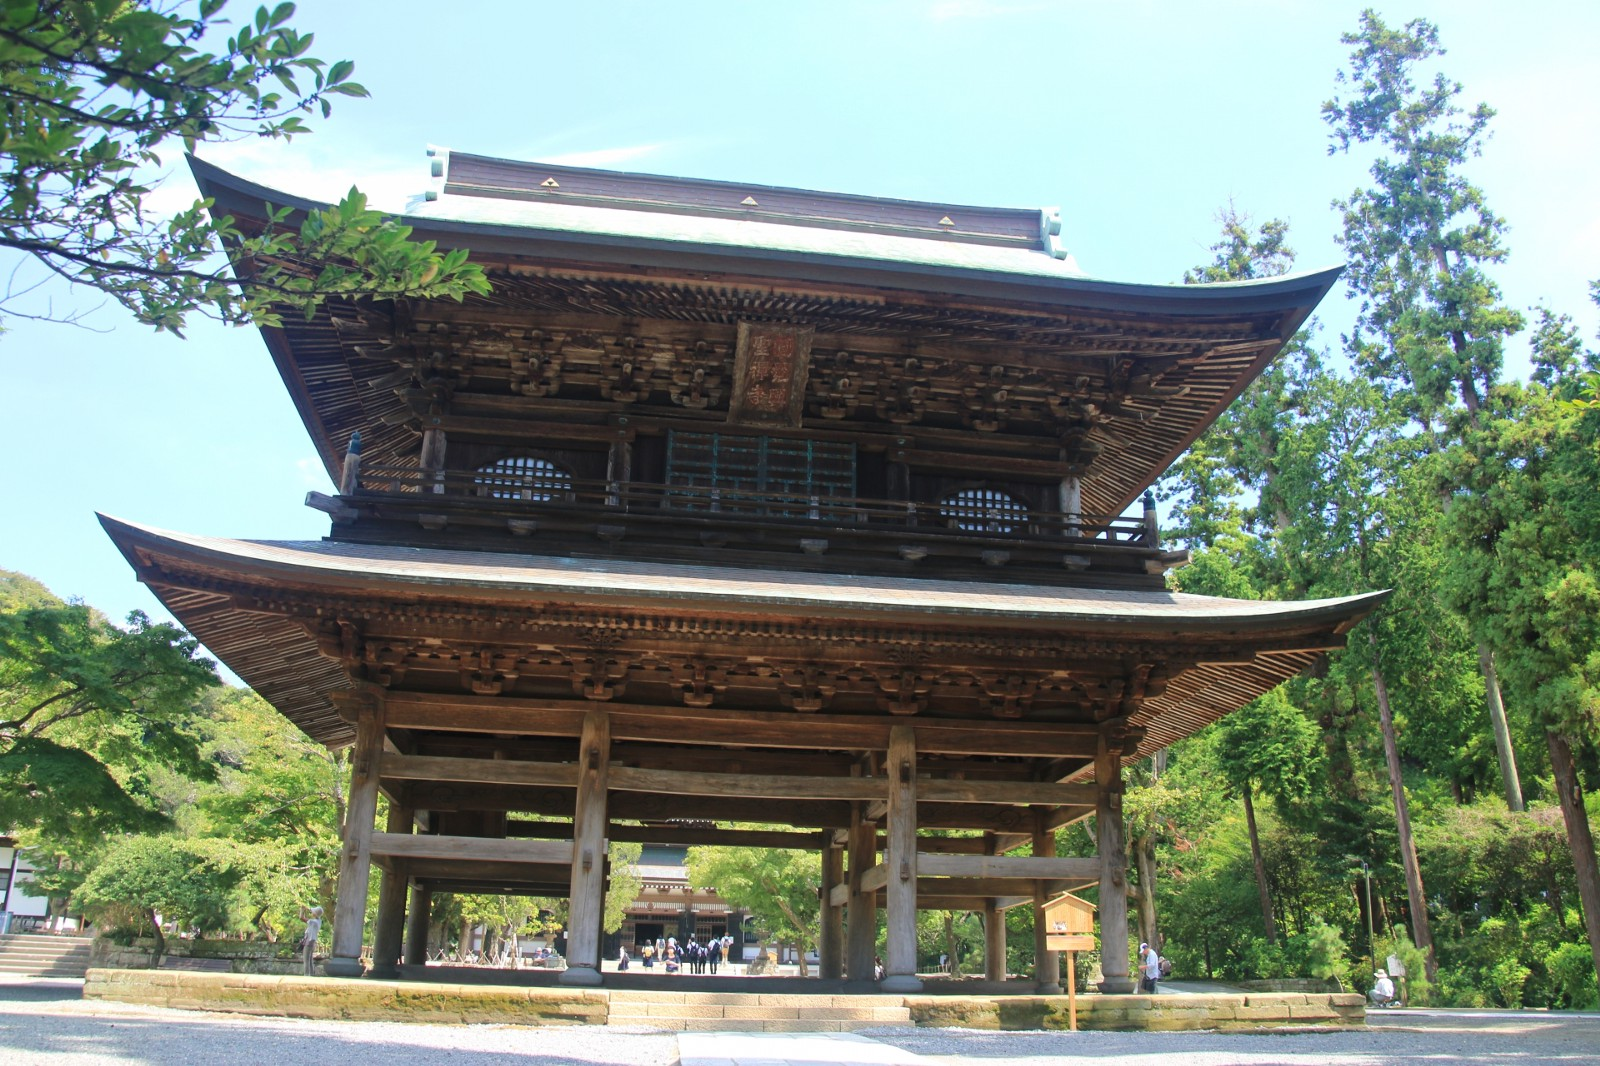 Engakuji Temple: One of the most important temples in Japan